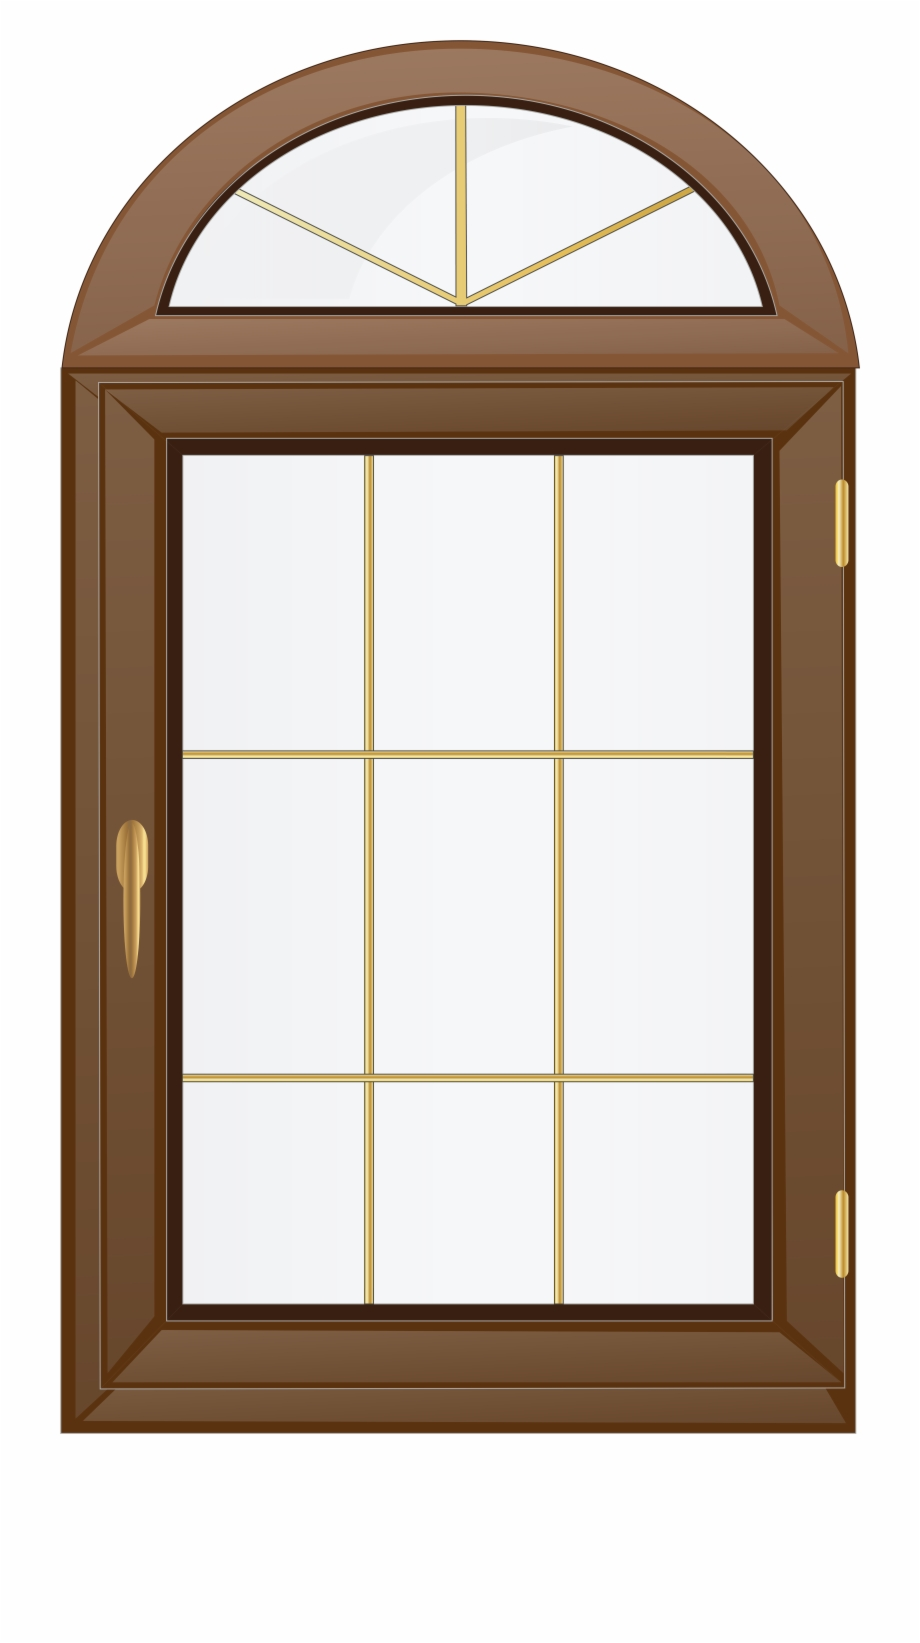 Wood window clipart jpg free download Brown Png Clip Art - Window Clipart Png, Transparent Png ... jpg free download